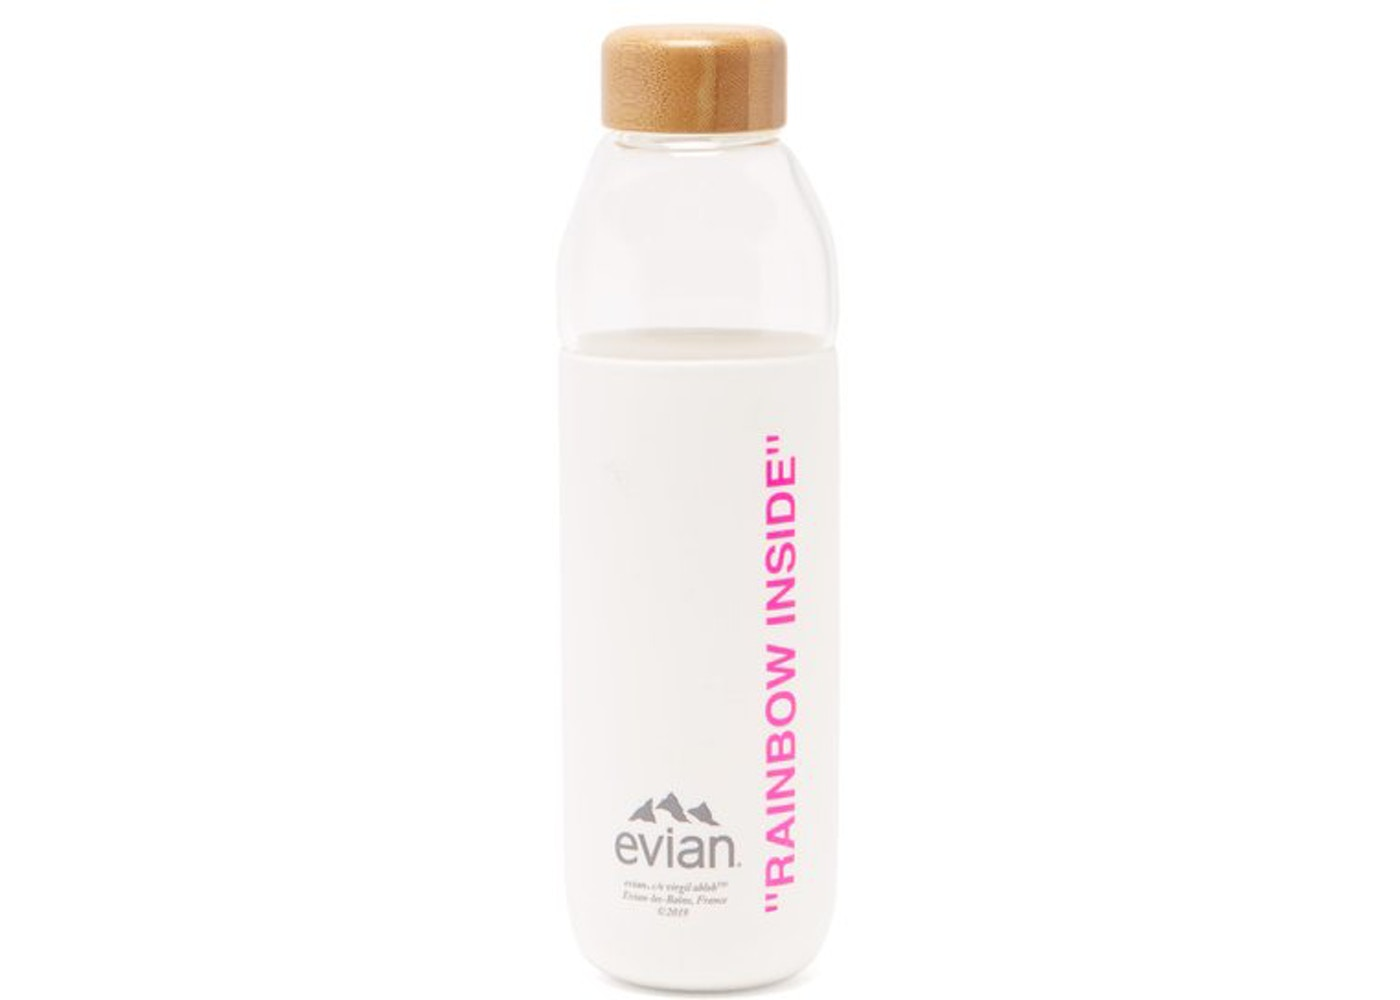 EVIAN BY VIRGIL ABLOH x SOMA Refillable Glass Water Bottle White/Pink